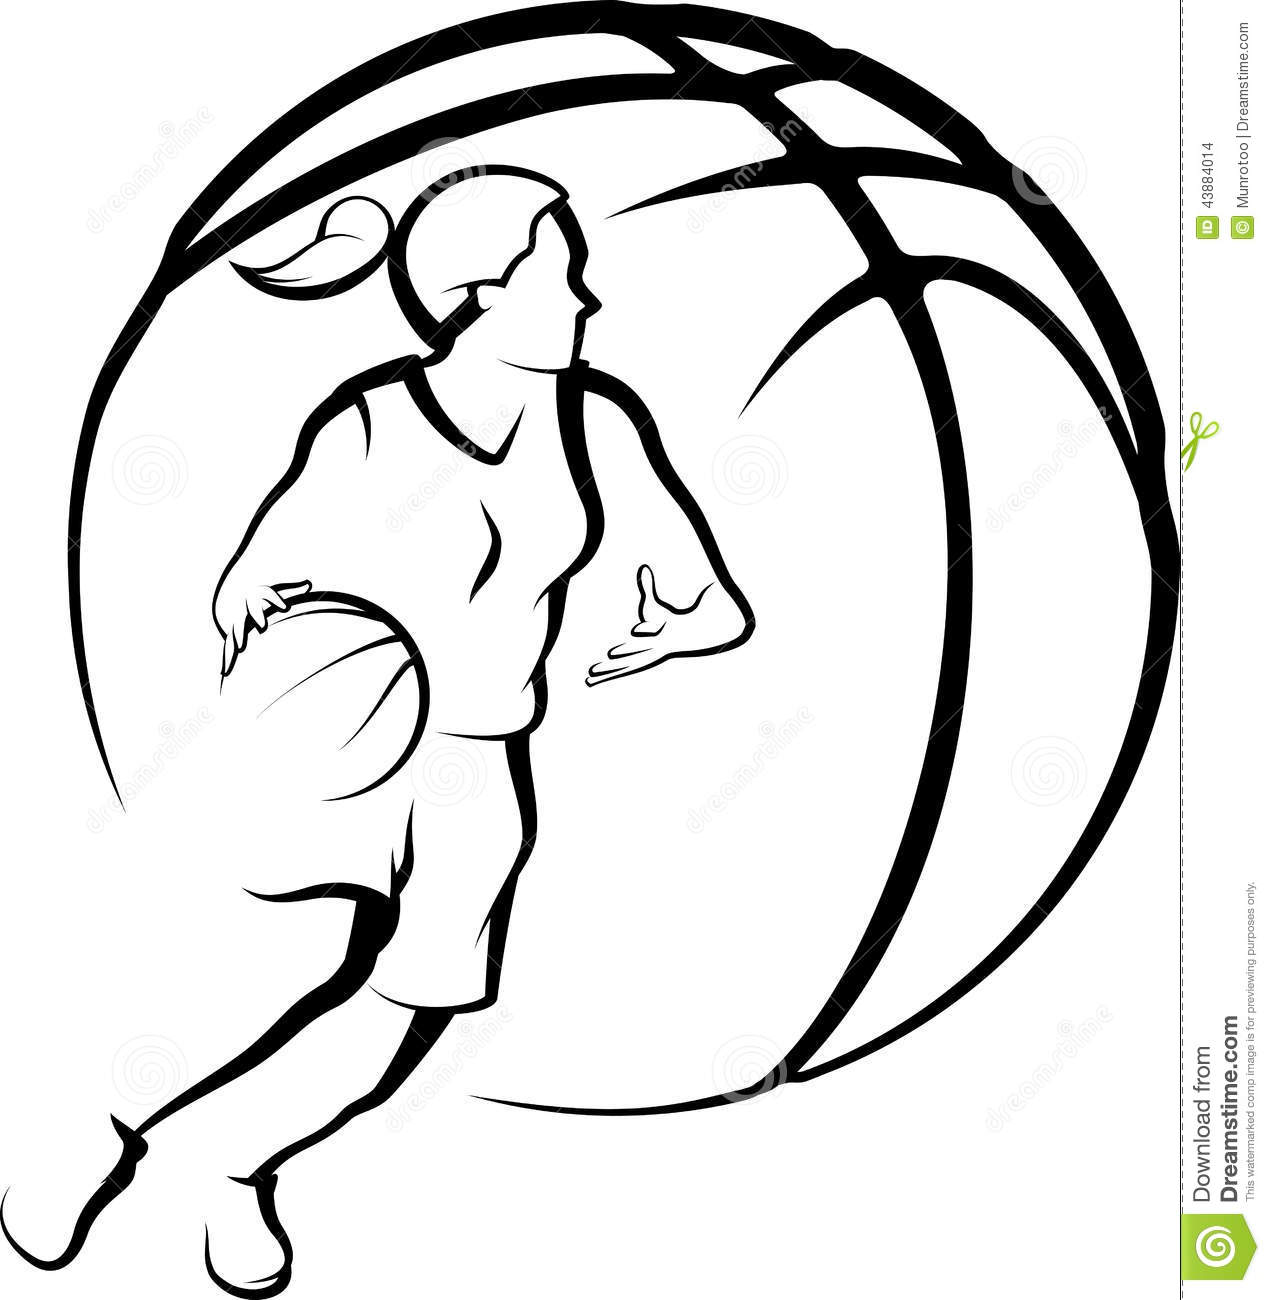 girl basketball player driving to the basket inside a stylized ballBasketball Drawings Step By Step